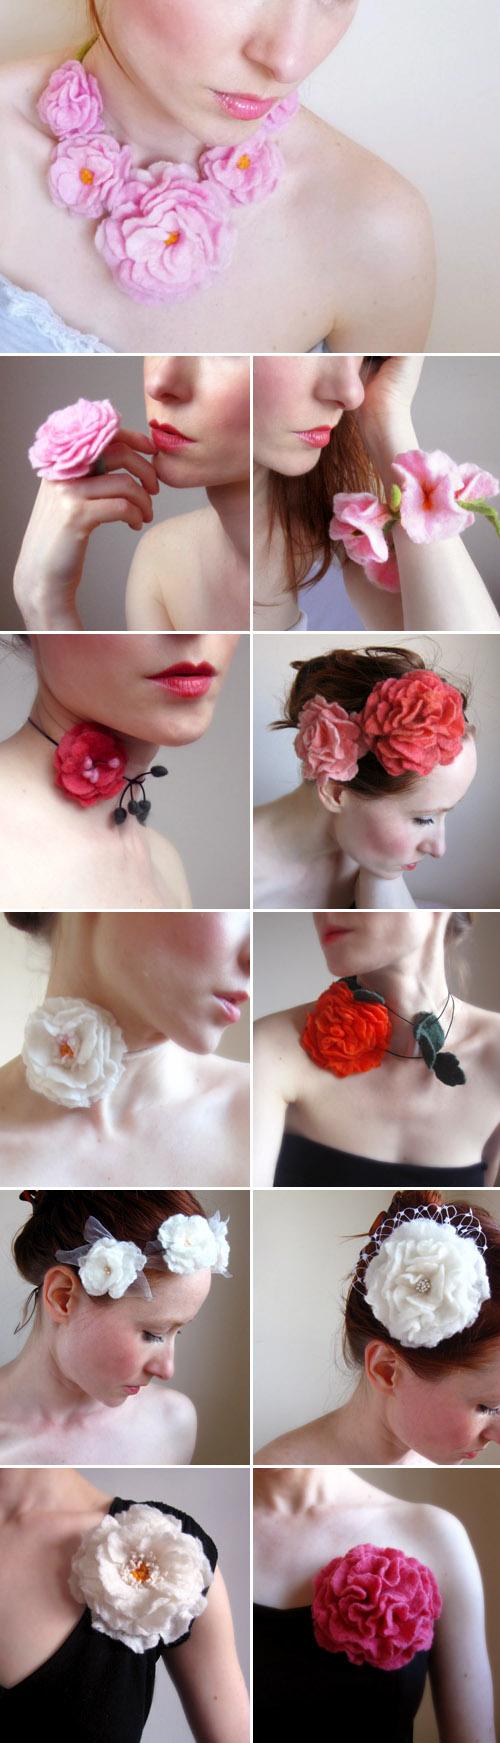 felt bridal hair accessories, flowers and jewlery by Crafts2Cherish on Etsy.com